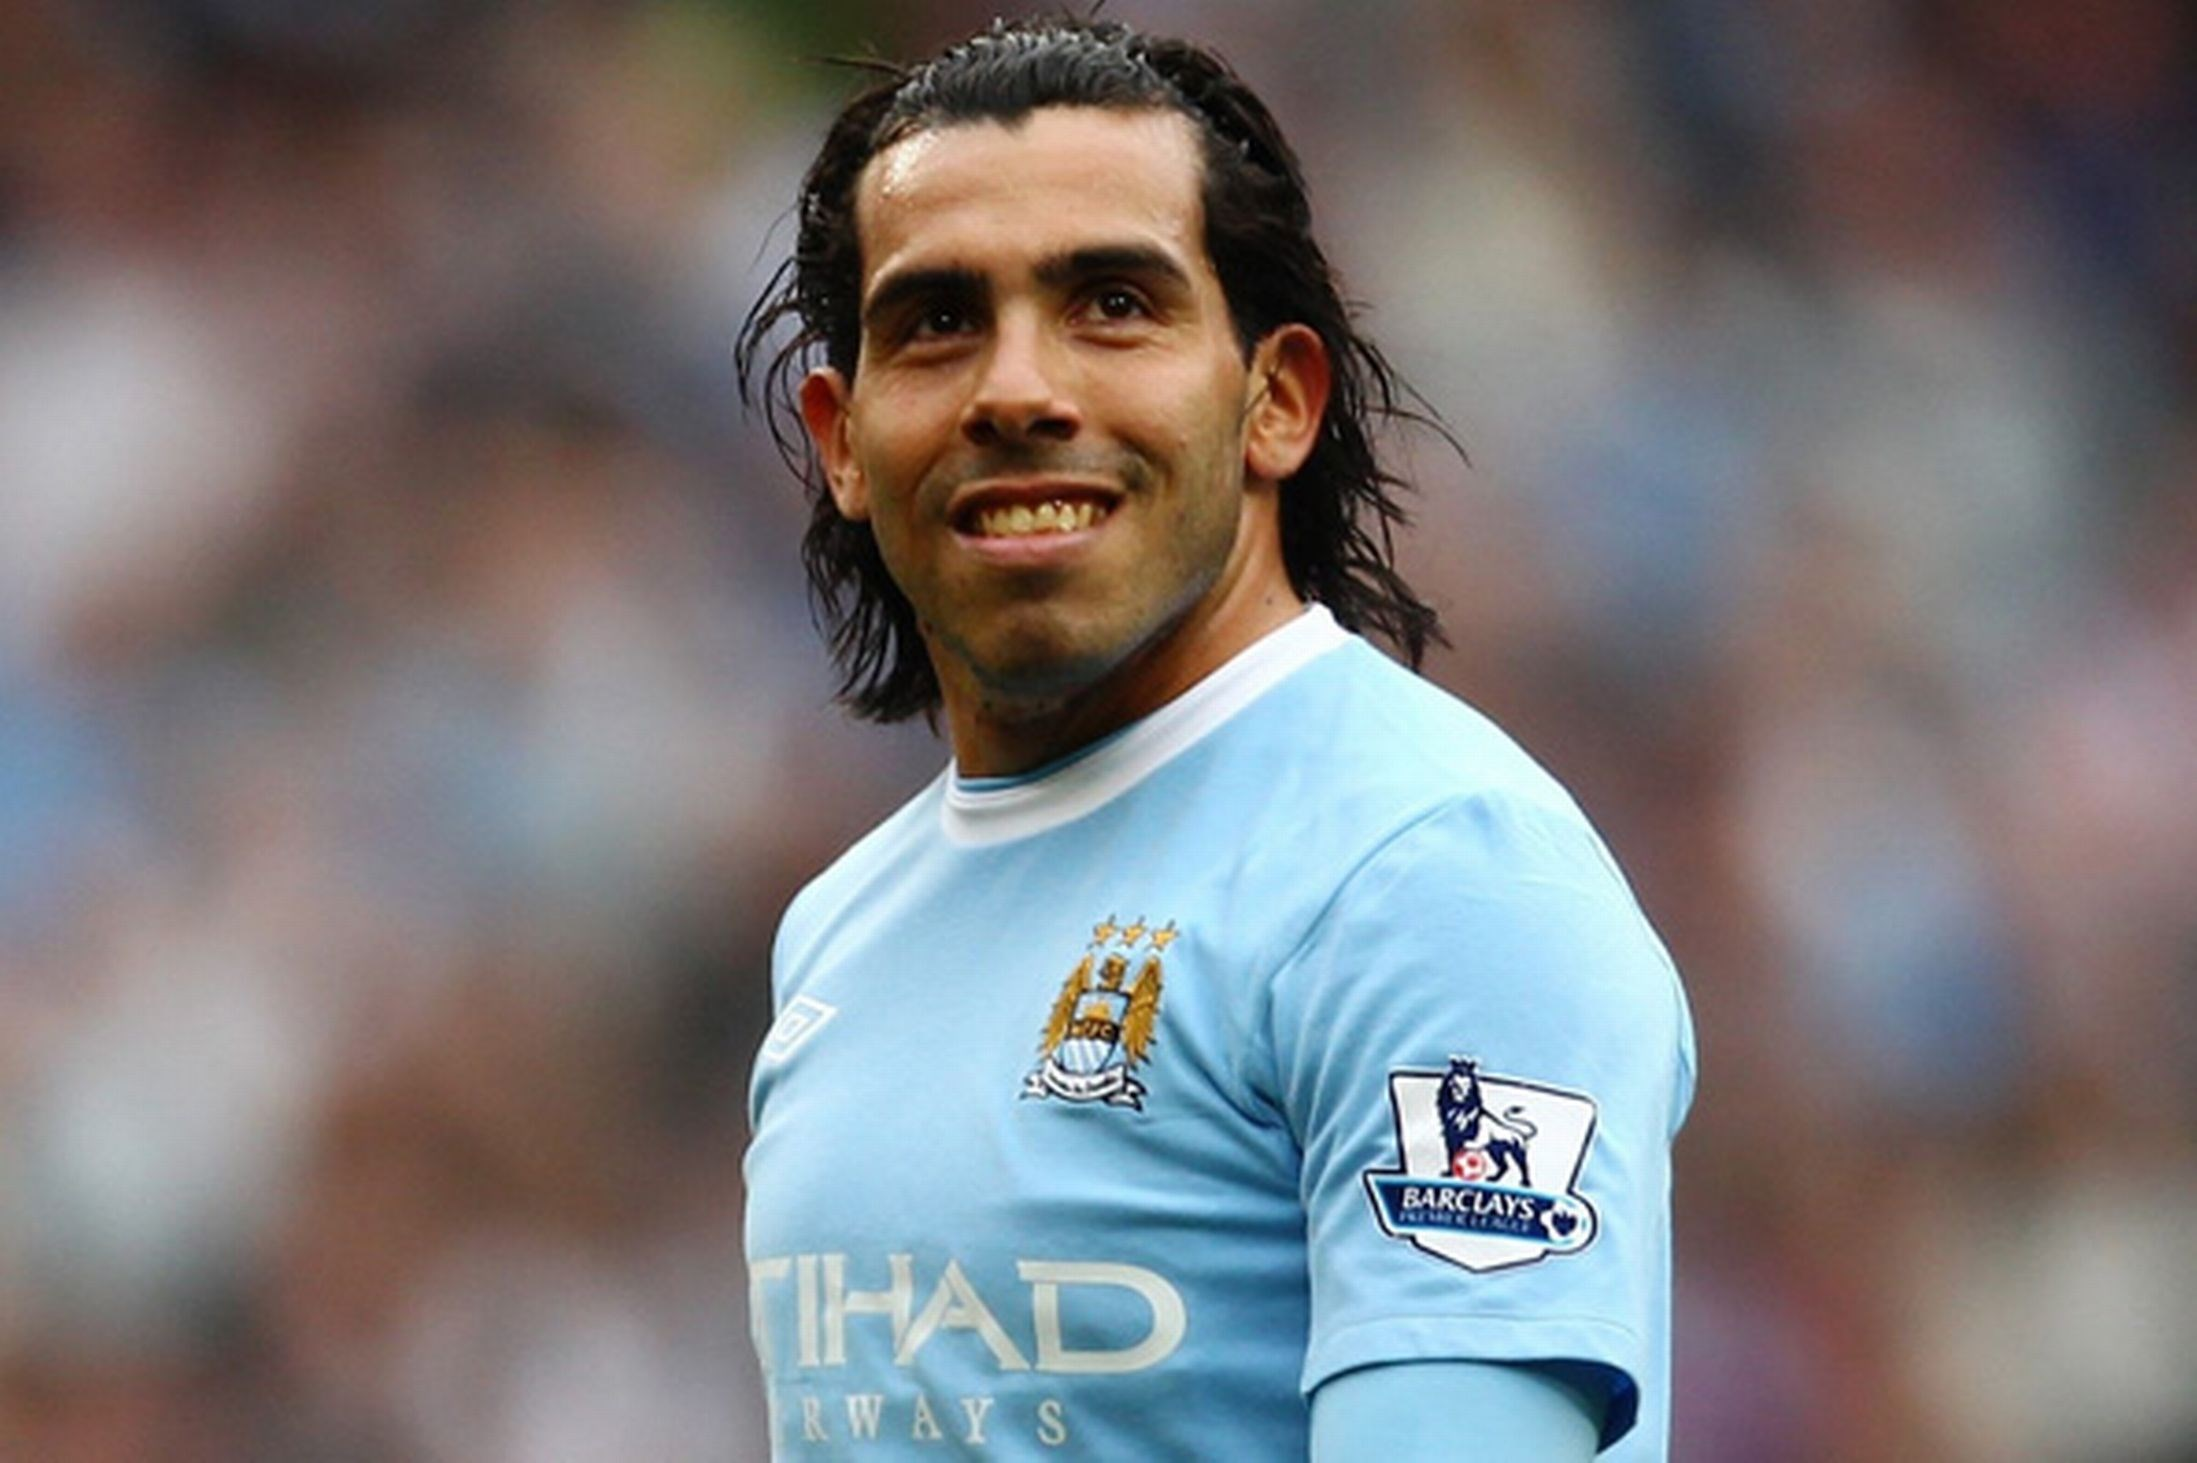 M Name Wallpaper Hd Carlos Tevez Known People Famous People News And